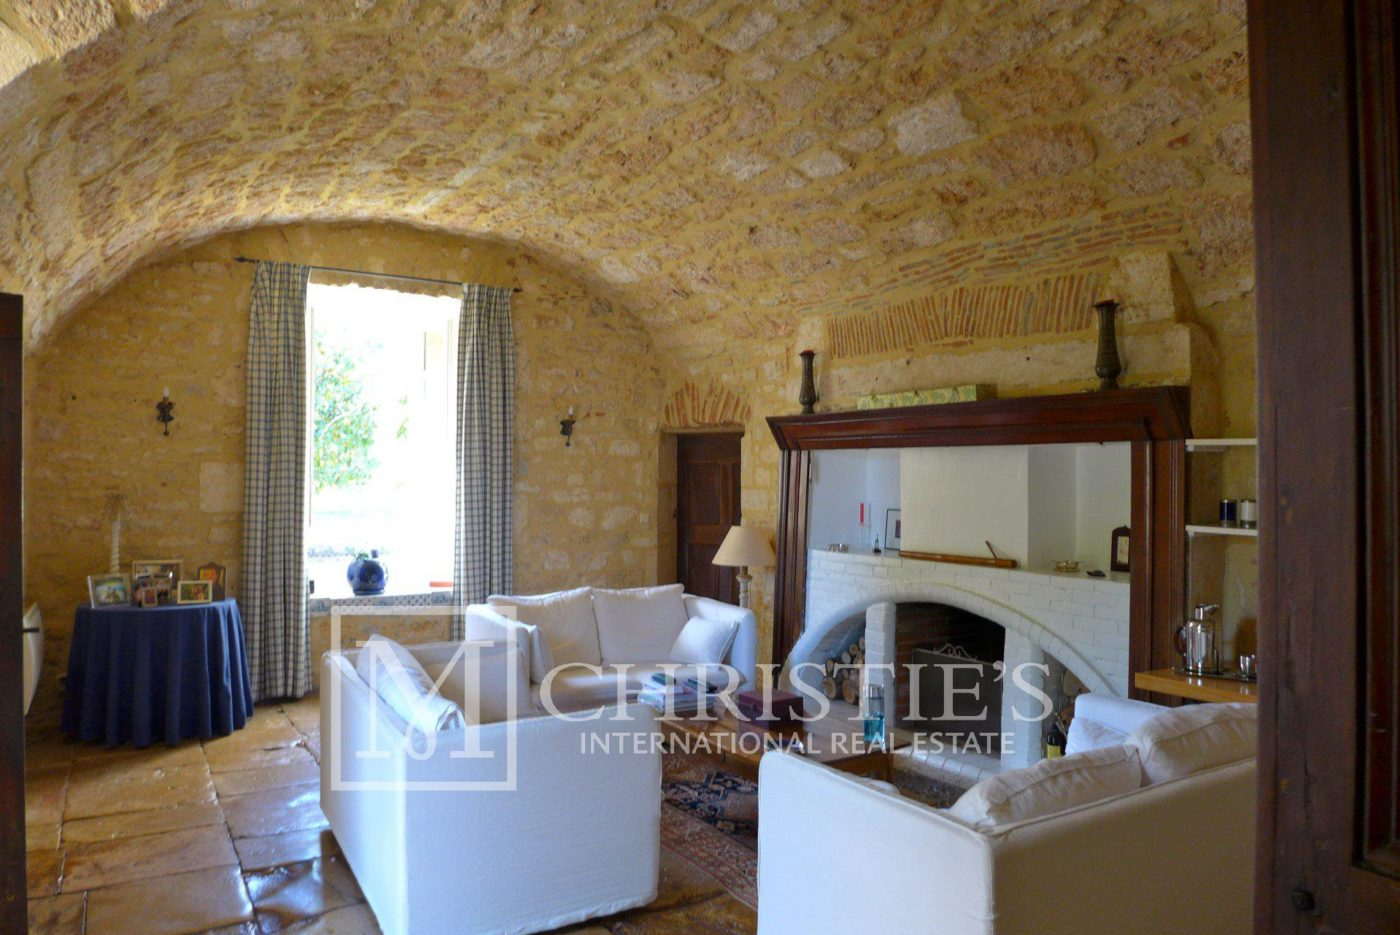 Living-room, Fireplace, Tile - Domaine with Organic Vineyard In AOC Cahors